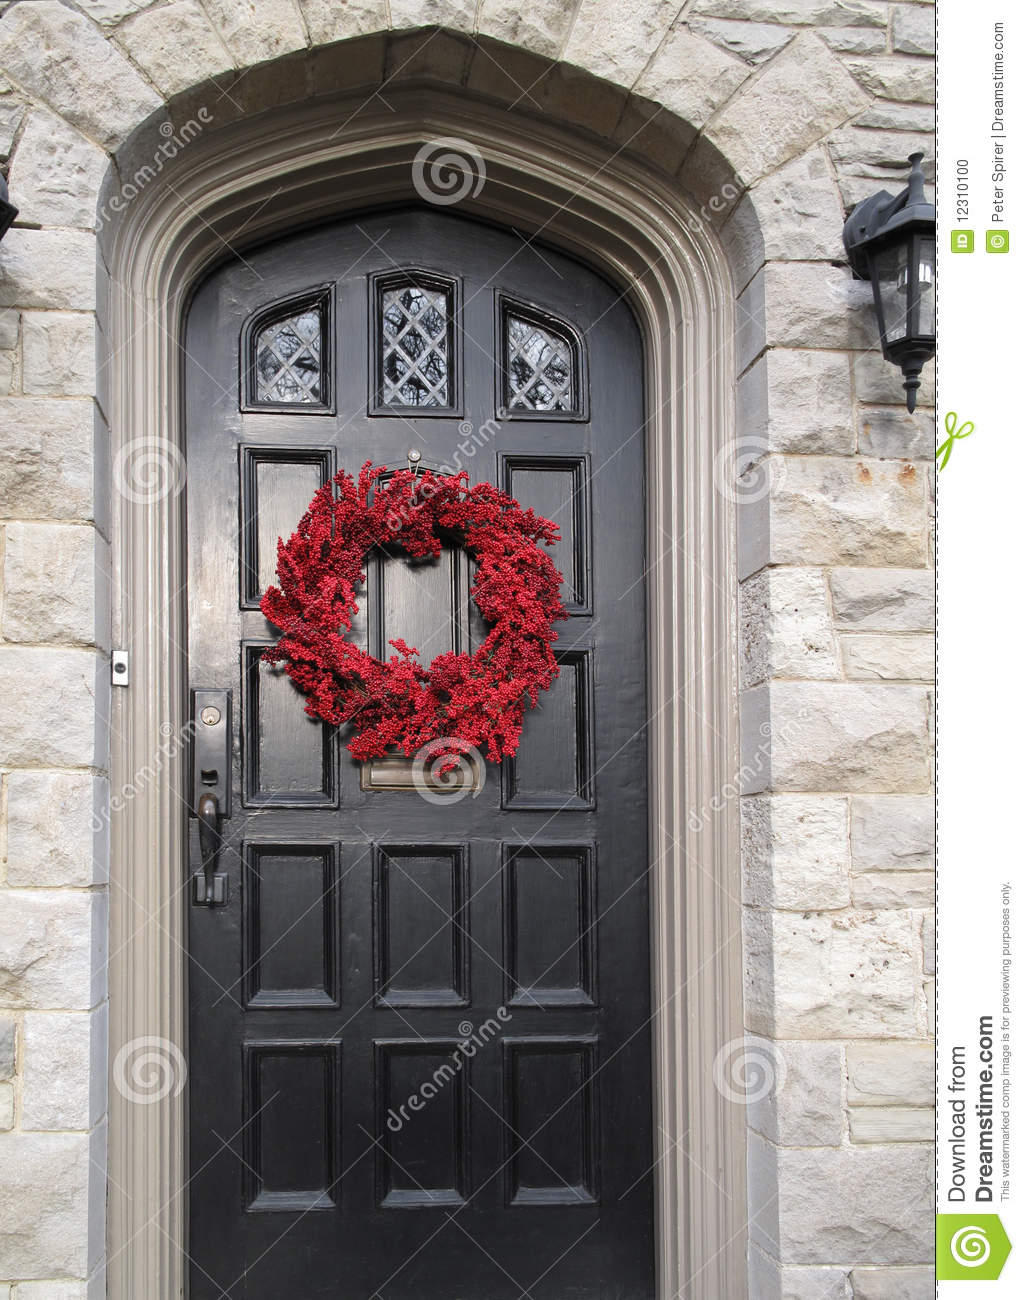 Christmas Front Door Clipart front door with christmas decorations stock photo - image: 12310100